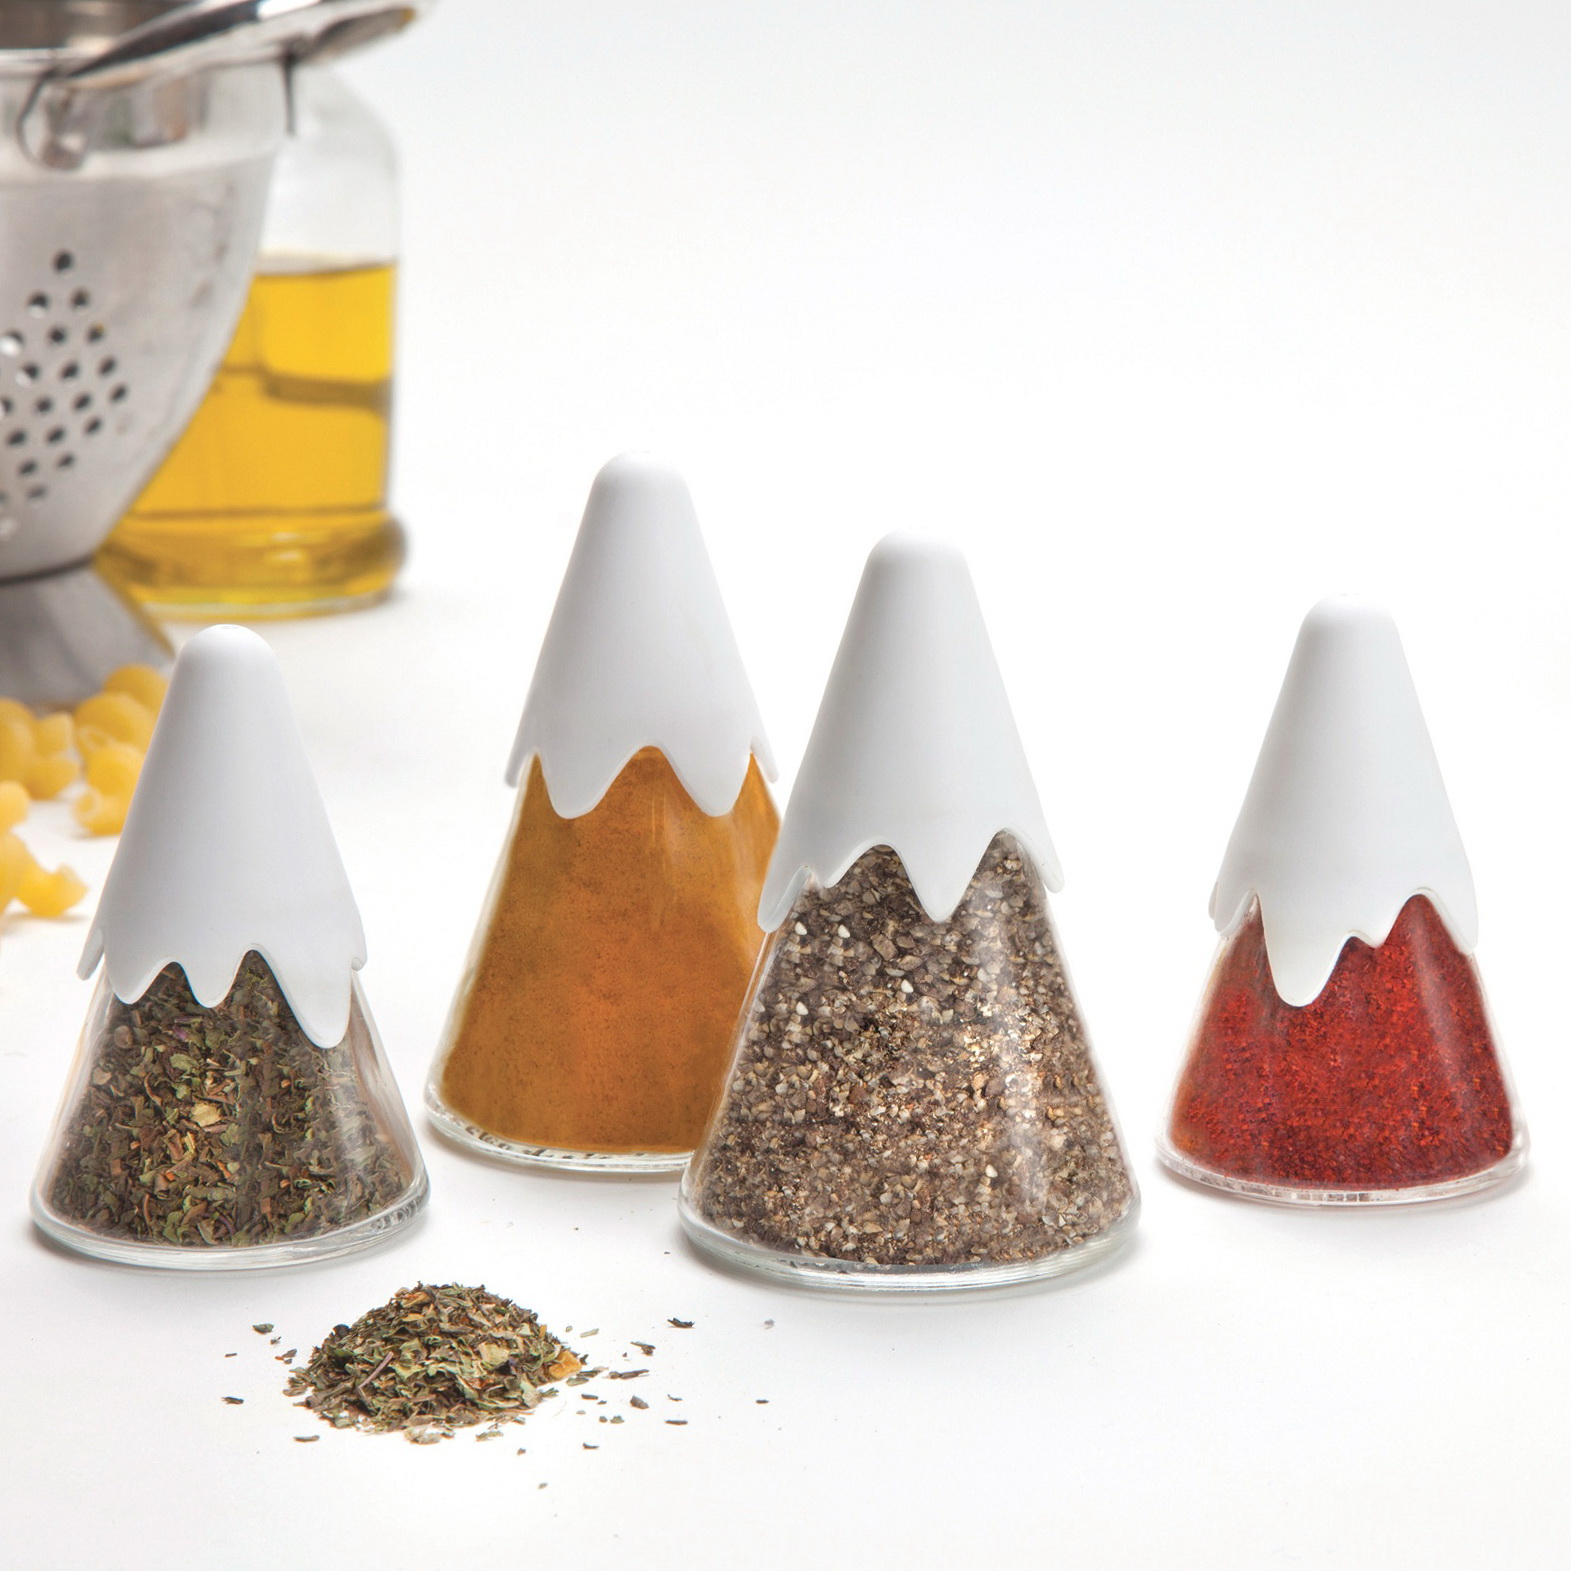 1-himalaya-spice-shakers-by-peleg-design